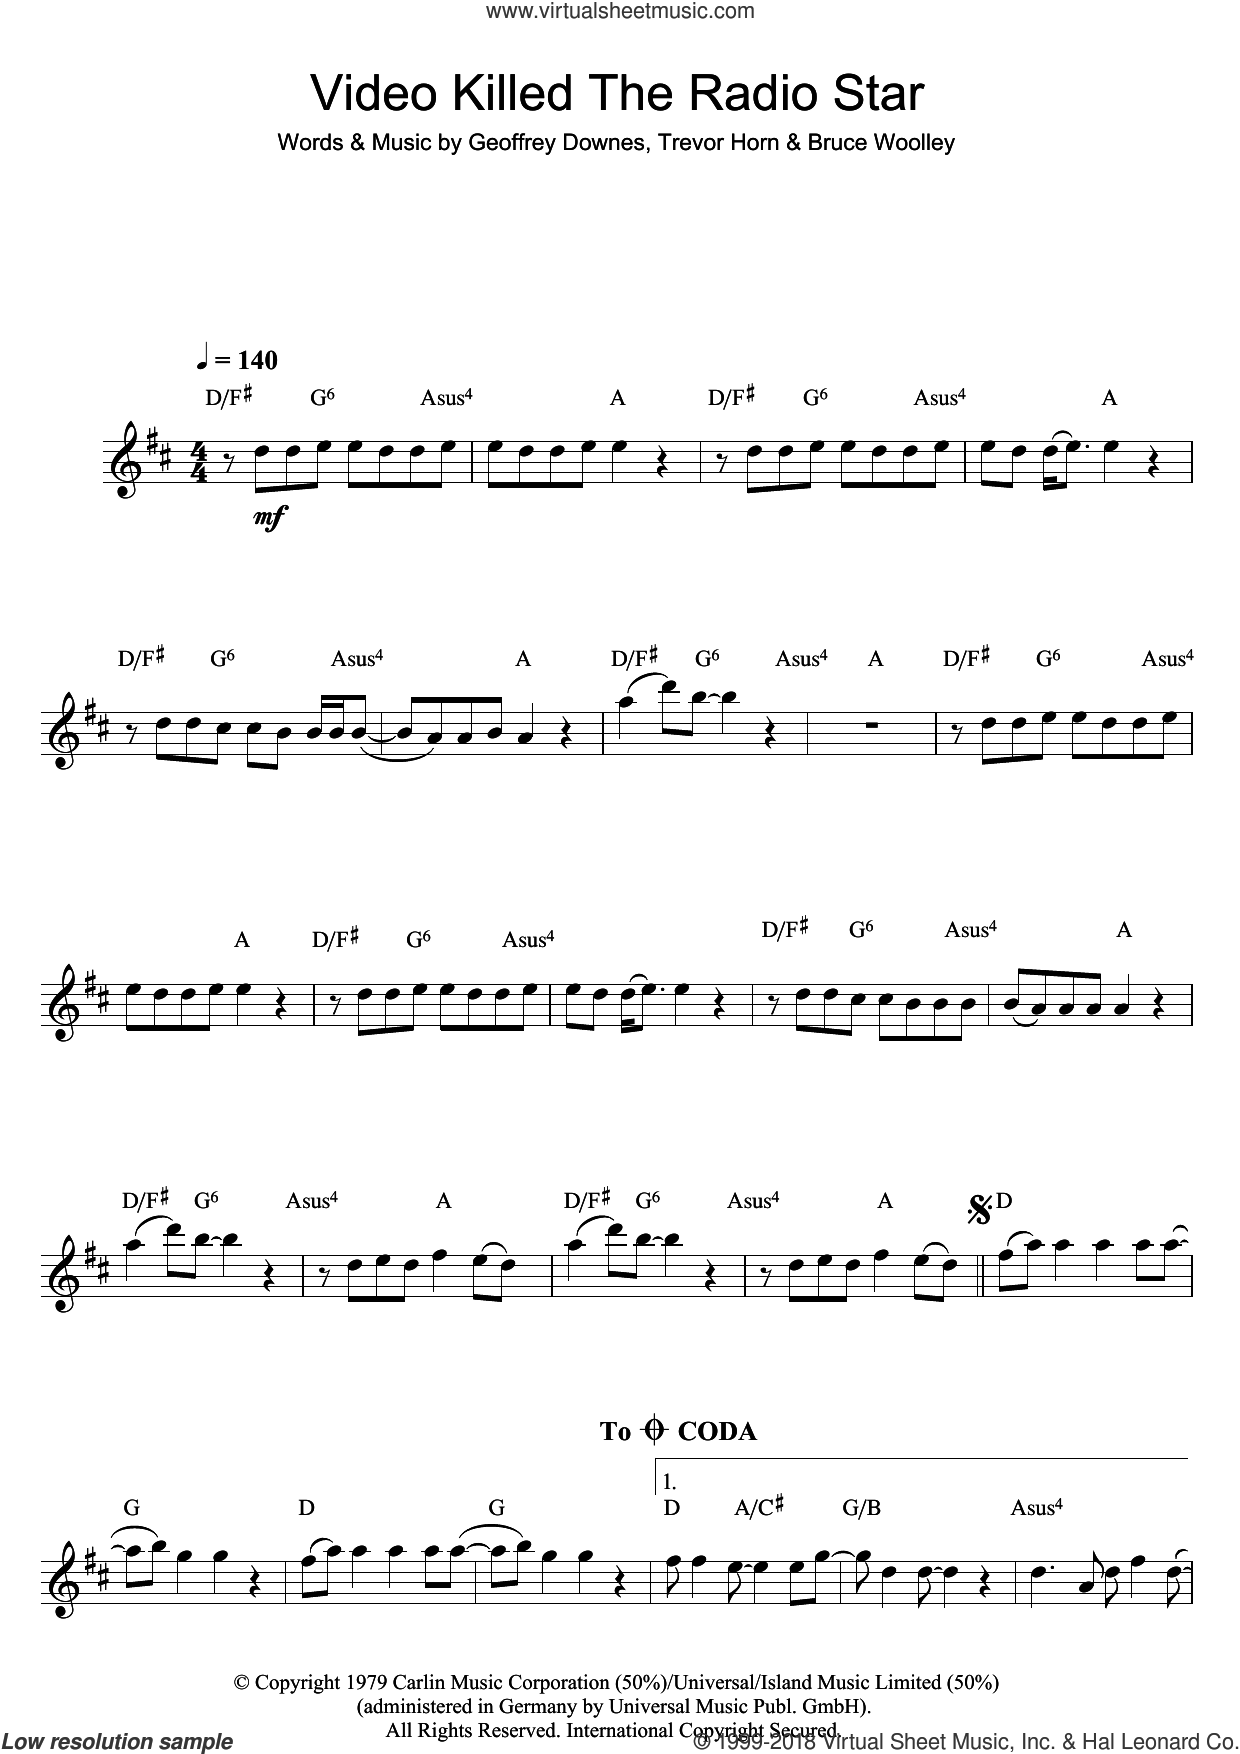 Video Killed The Radio Star sheet music for flute solo by The Buggles, Bruce Woolley, Geoff Downes and Trevor Horn, intermediate skill level